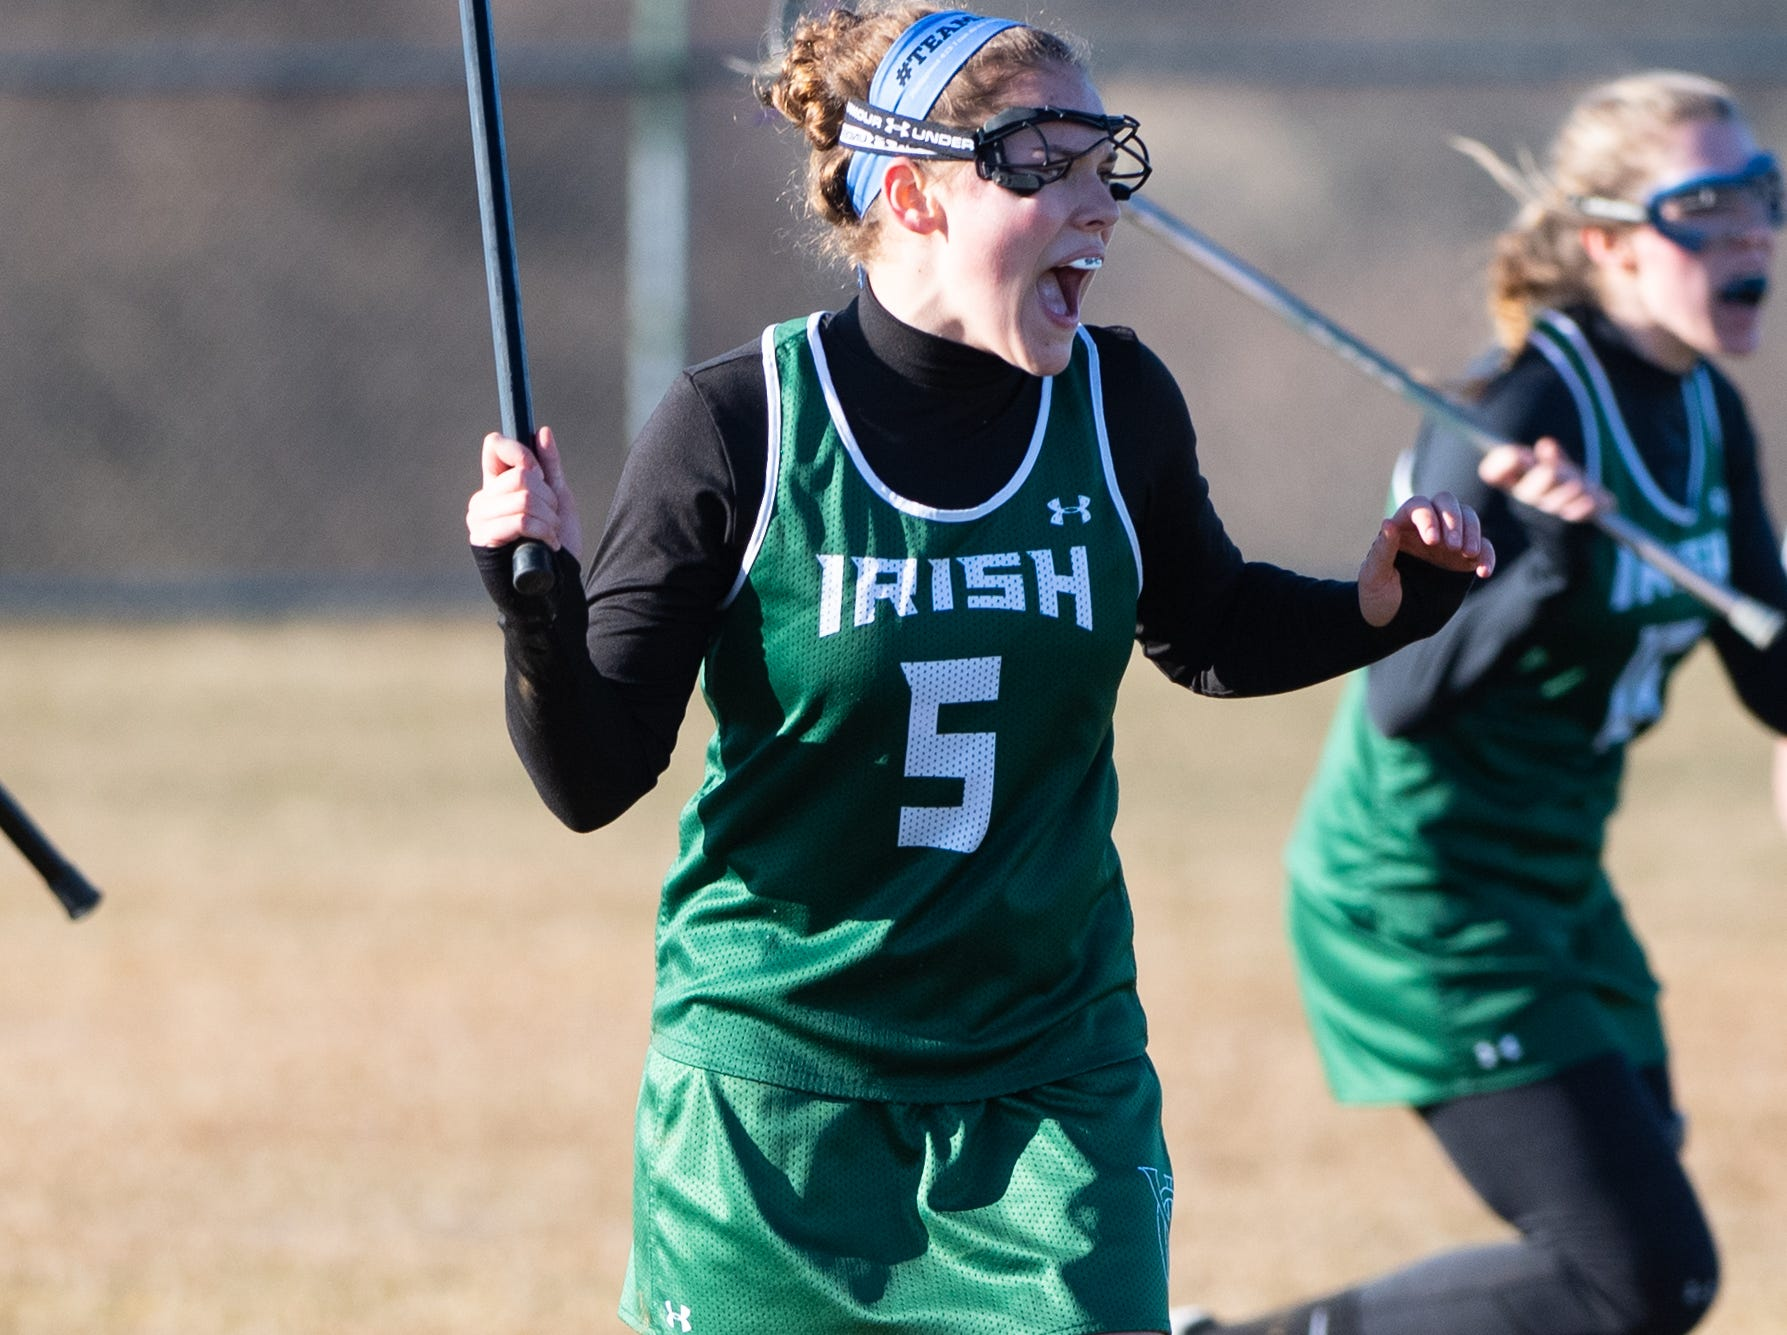 Grace Doyle (5) intimidates the defense during the girls' lacrosse game between Kennard-Dale and York Catholic, March 26, 2019 at Kennard-Dale High School. The Fighting Irish defeated the Rams 10 to 9.